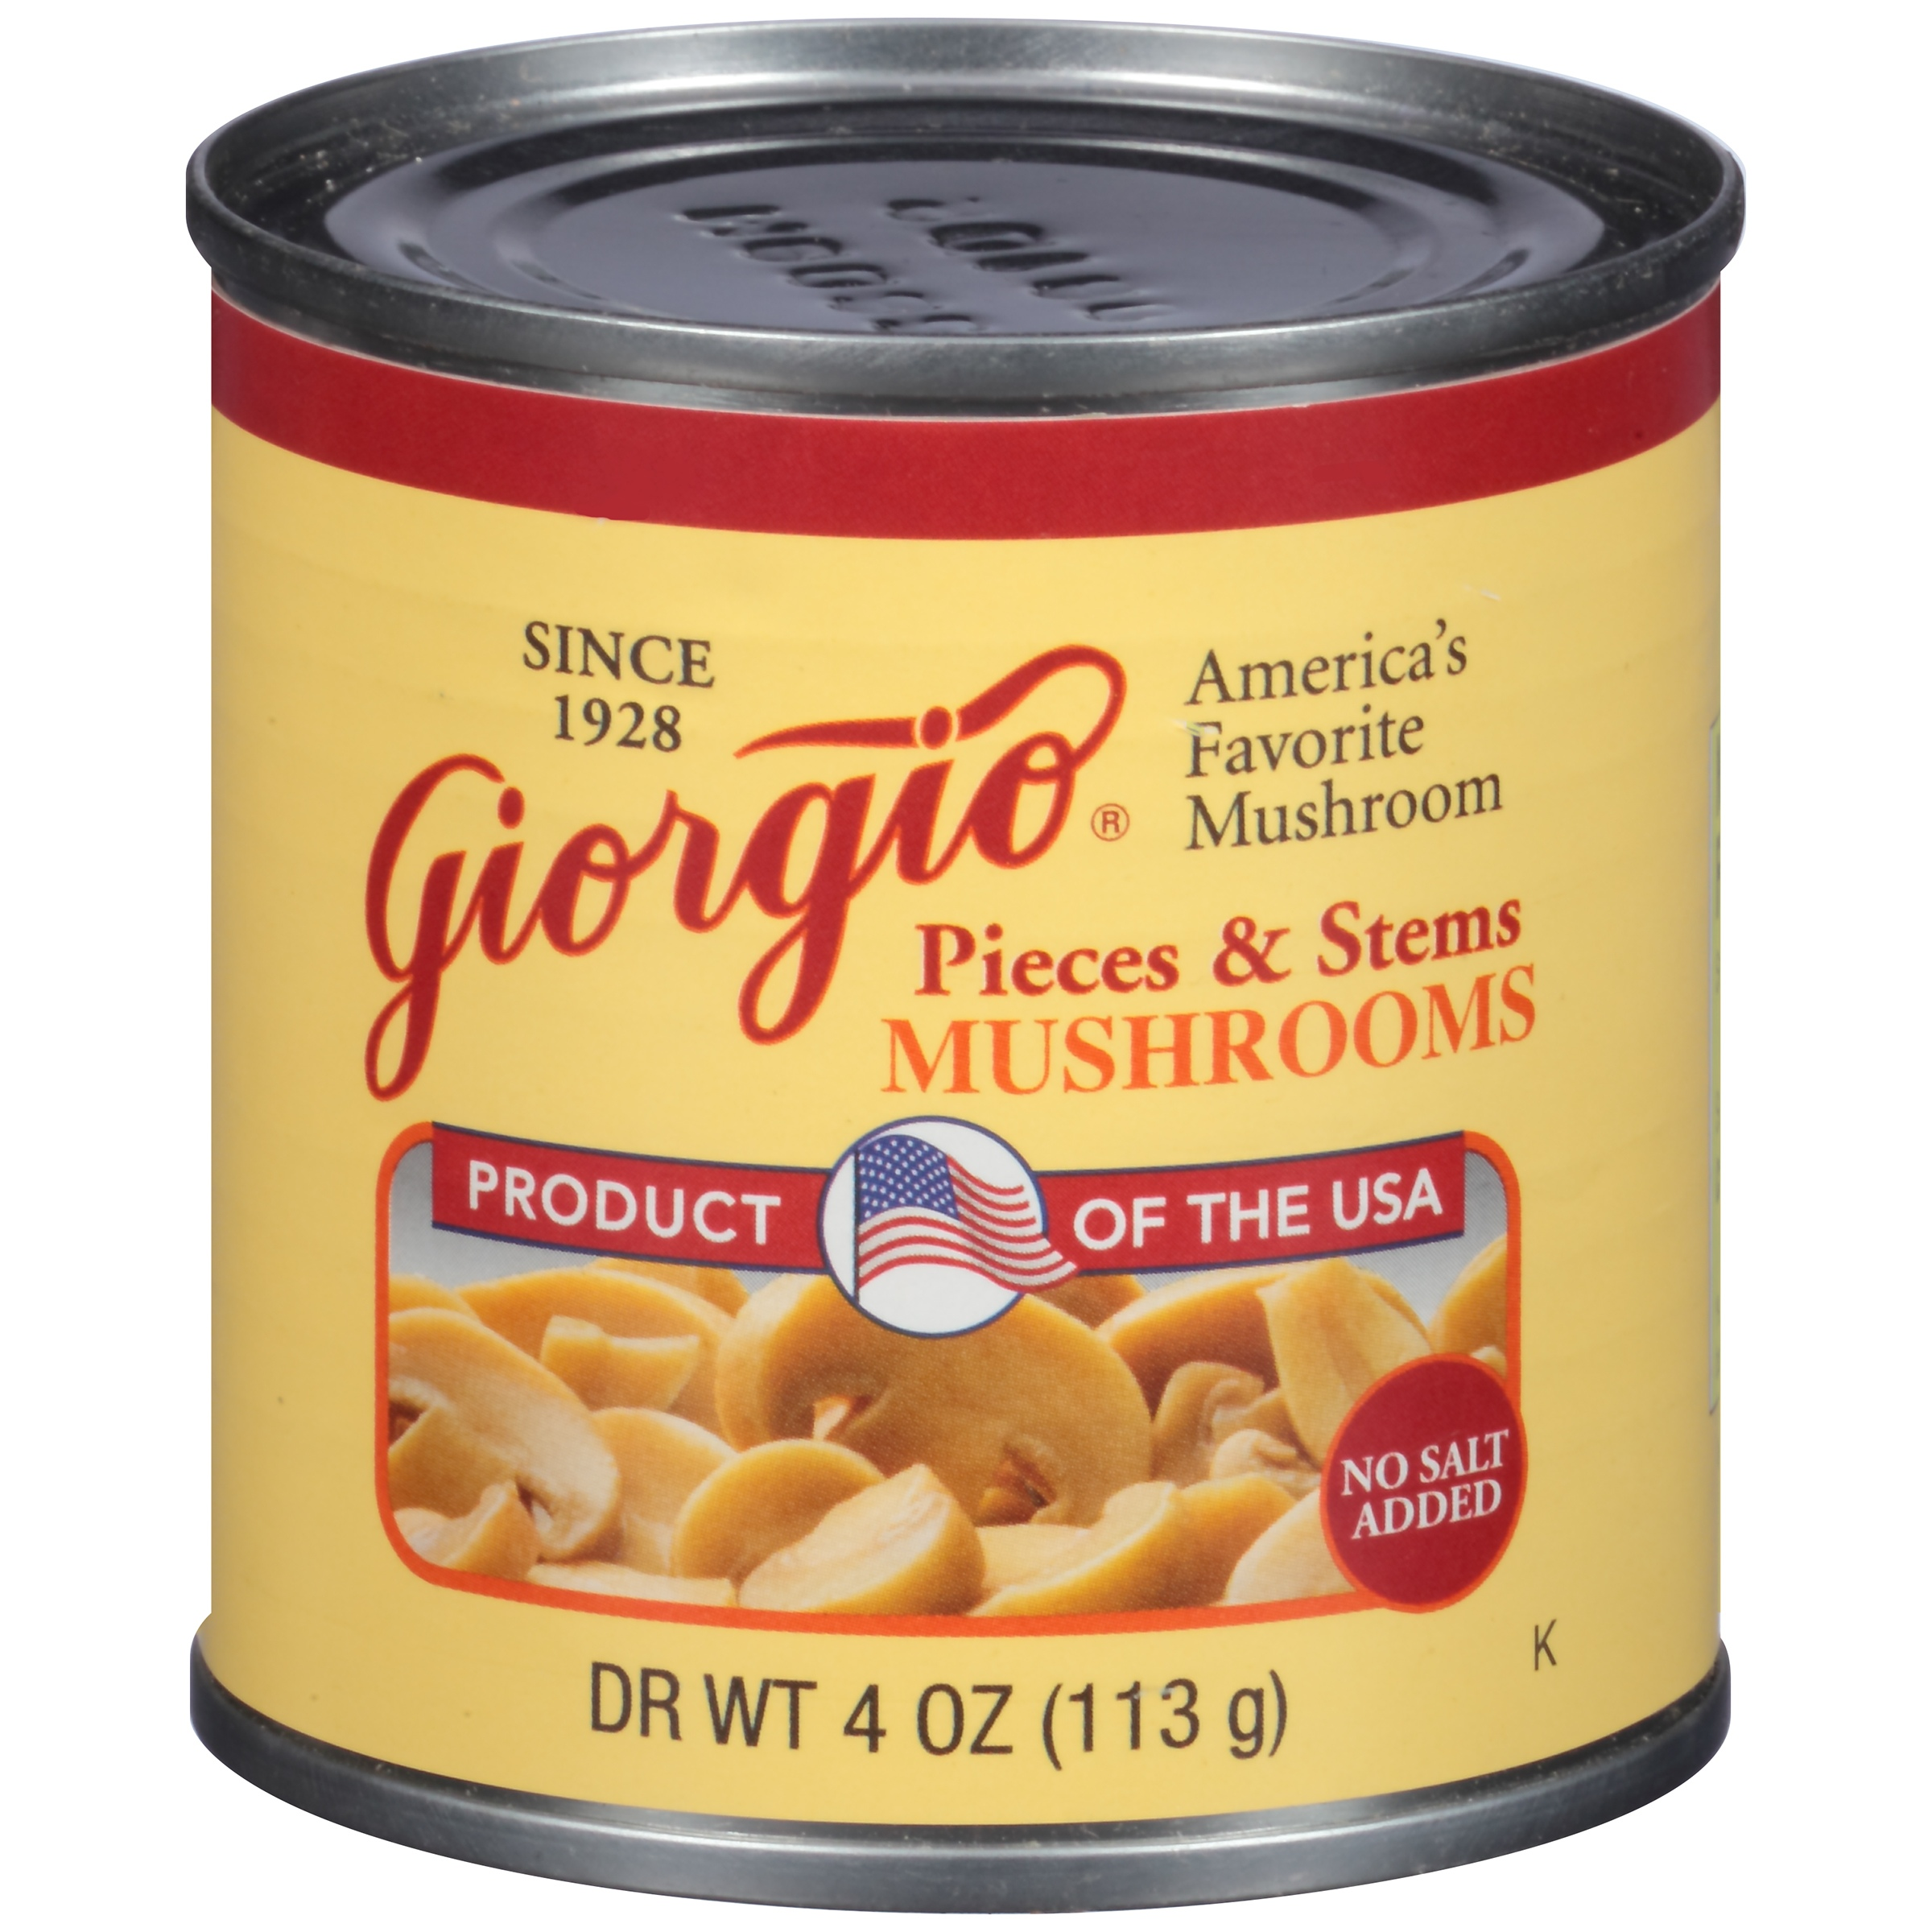 Giorgio No Salt Added Mushrooms Pieces & Stems, 4 oz by Giorgio Foods, Inc.